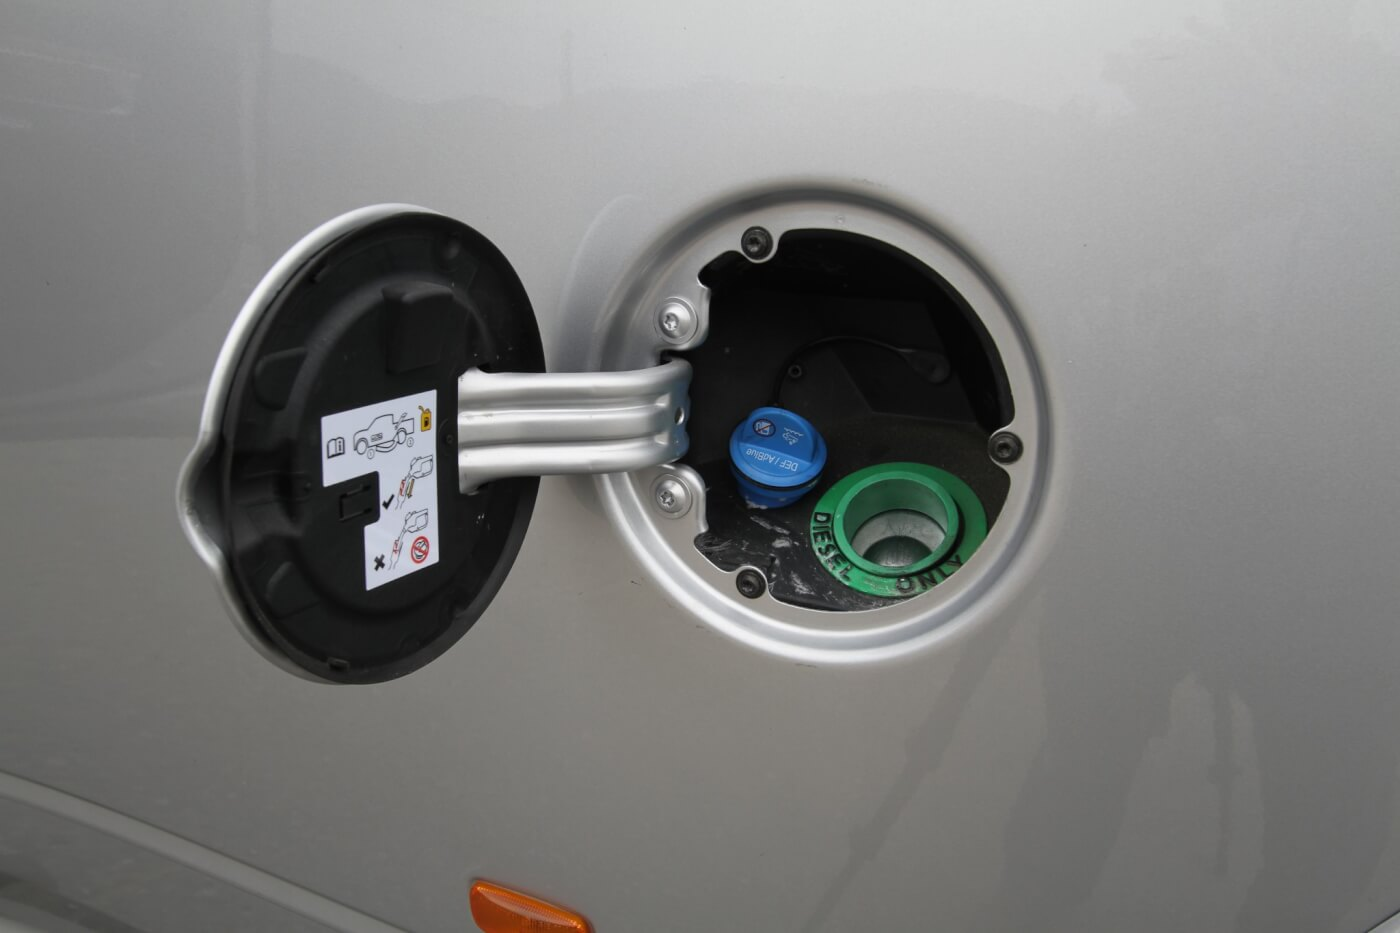 12. All new diesel trucks now require DEF, diesel exhaust fluid. The Ram 3500 places the DEF filler in the fuel door, next to the fuel fill. The DEF filler is the blue one, as is the required standard.